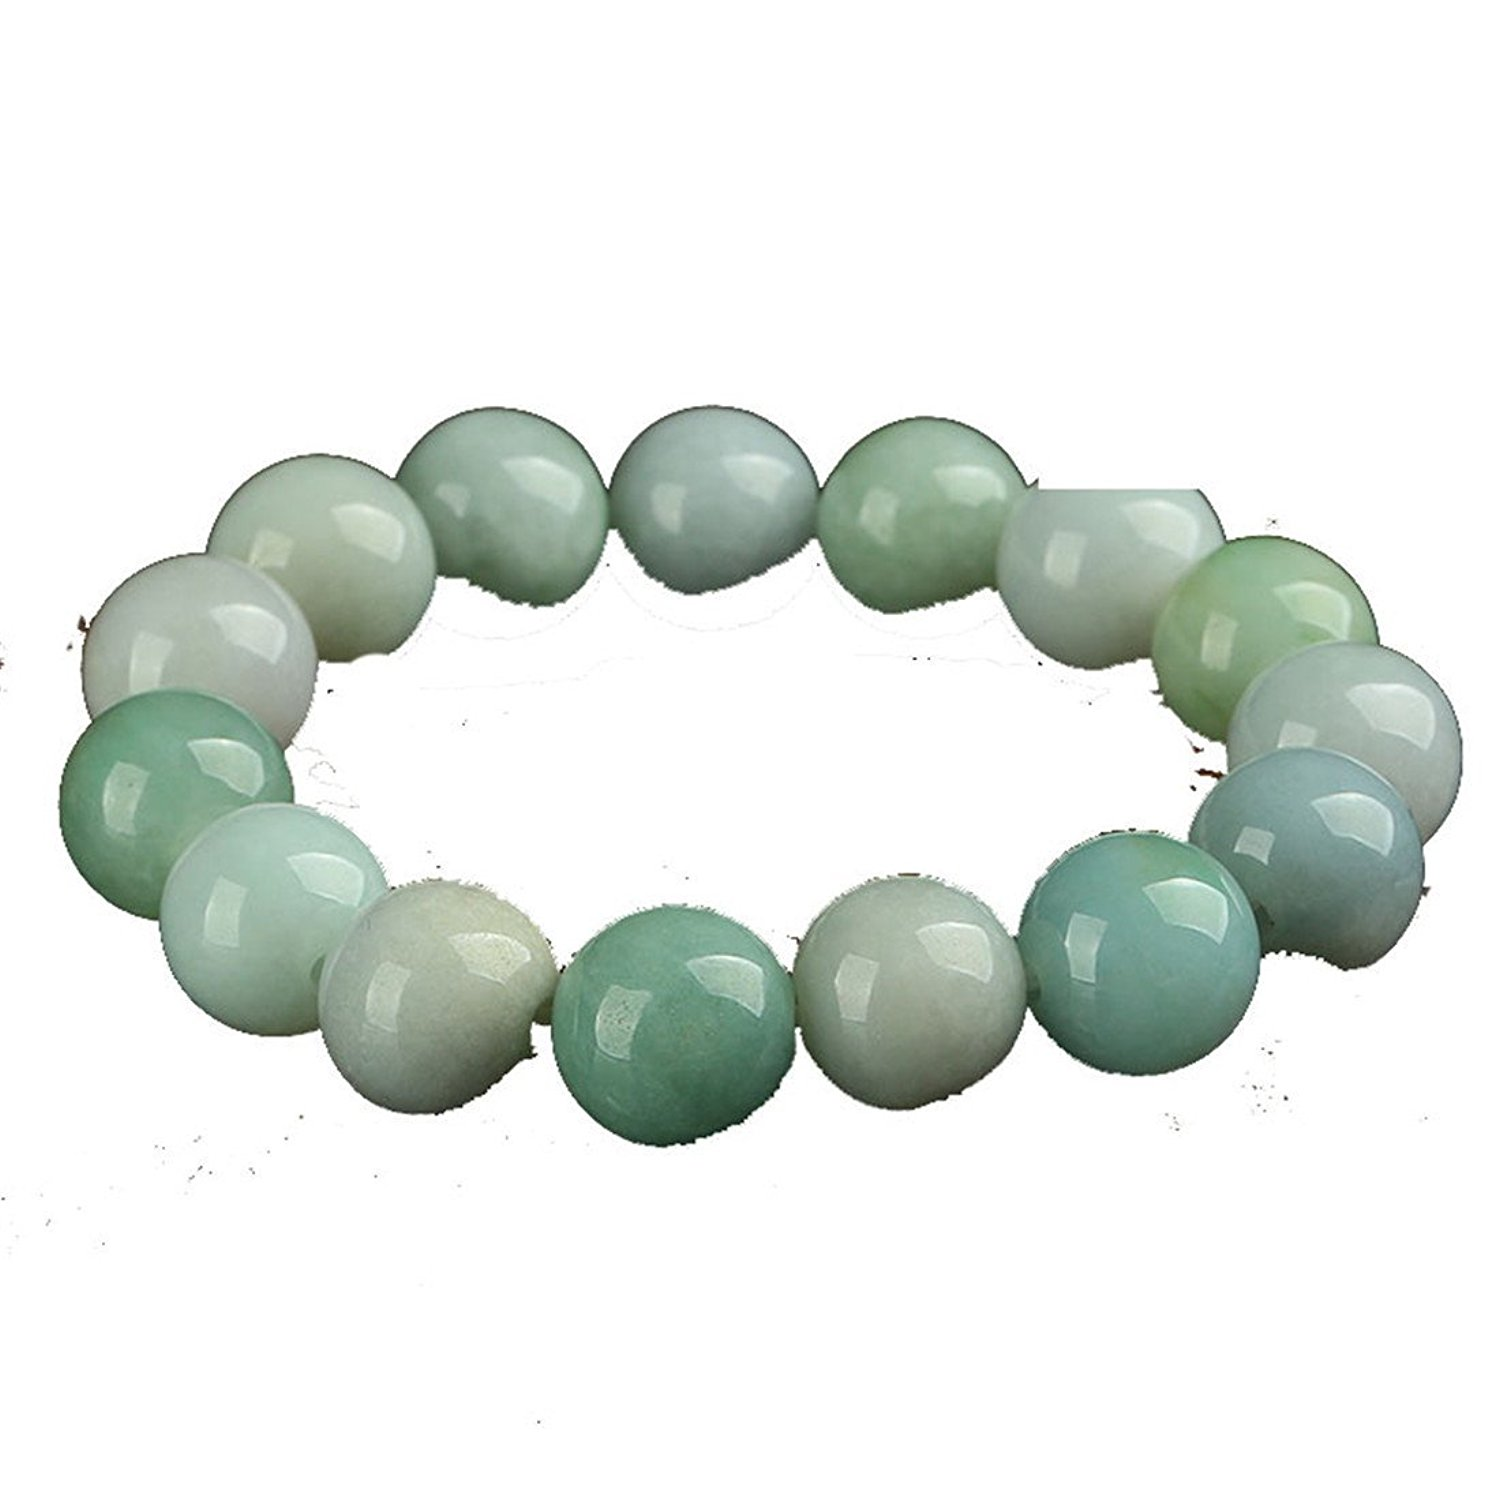 jewelry making loose bracelet diy round for store stone natural gemstone wholesales necklace beads wholesale sodalite product charm